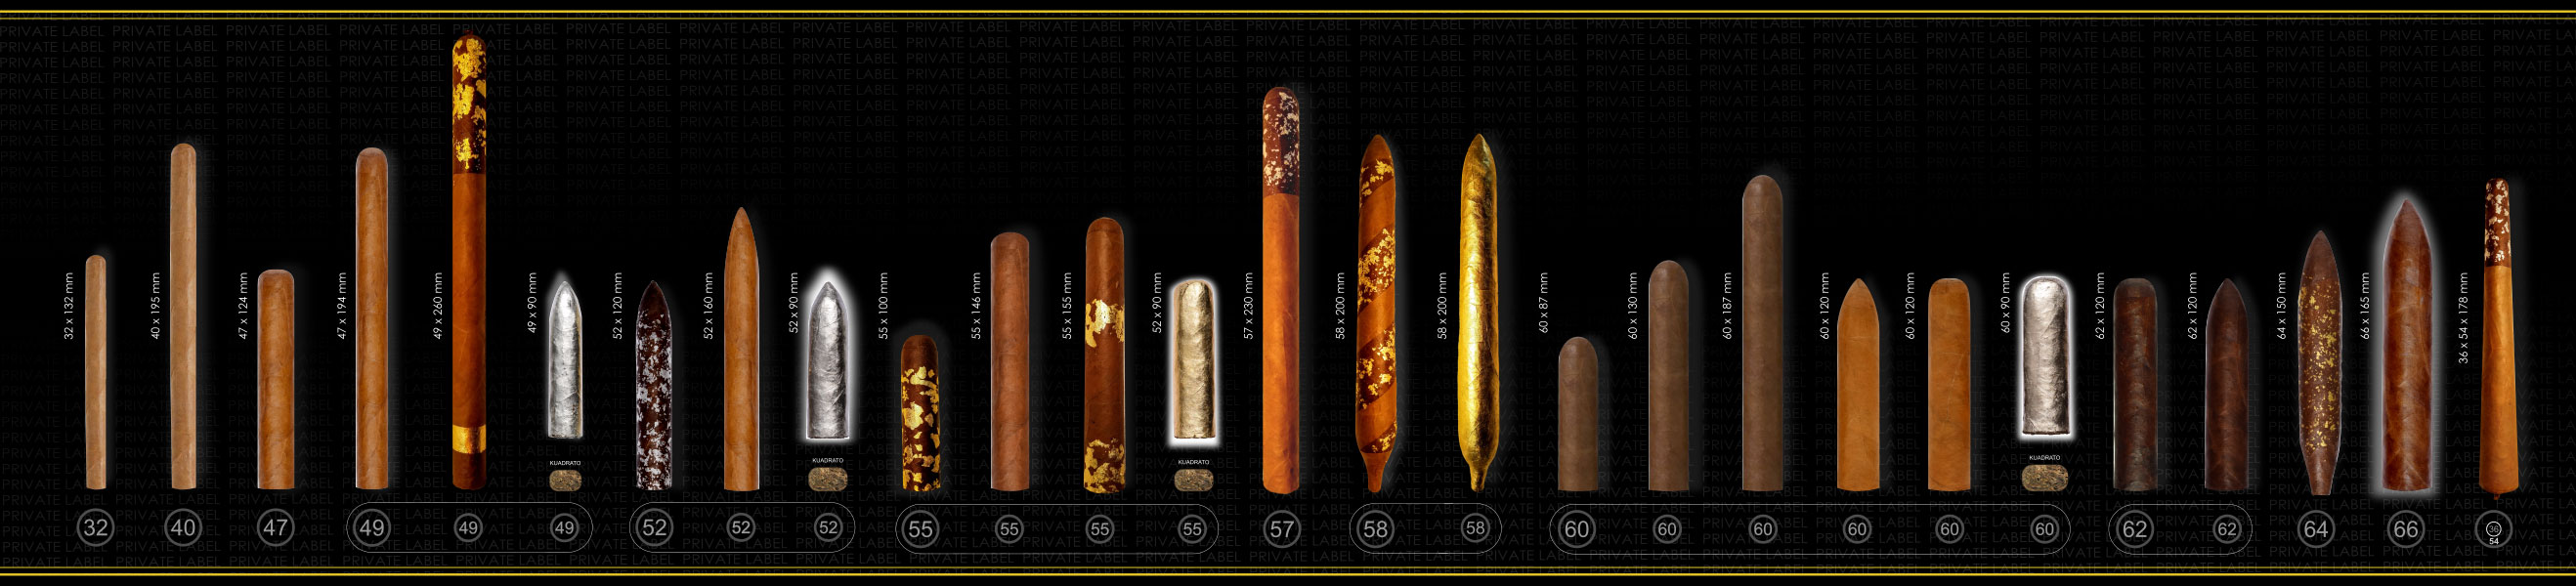 Catalog Cigars Private Label